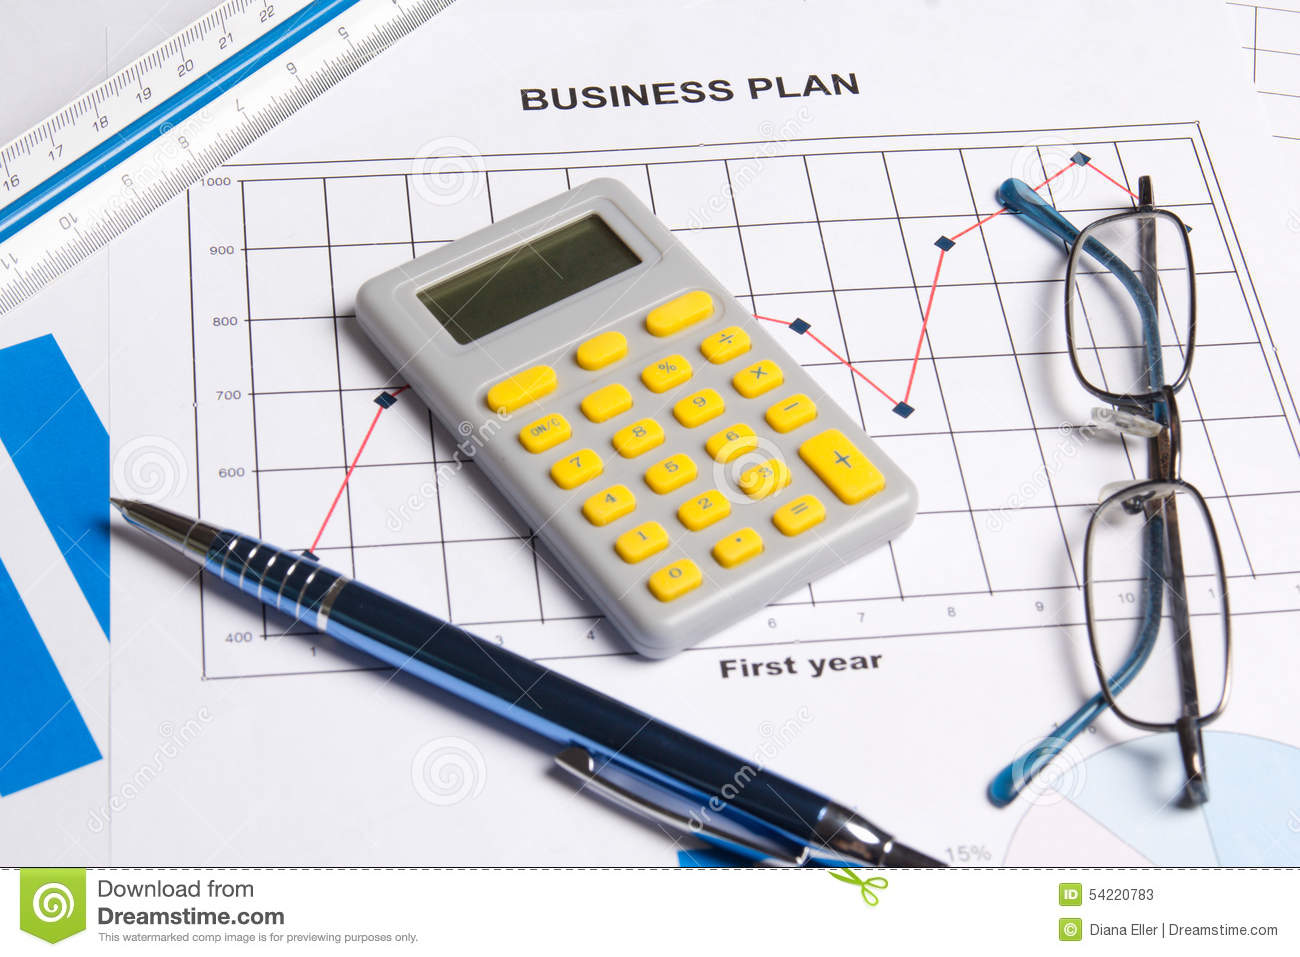 at&t business plans calculator